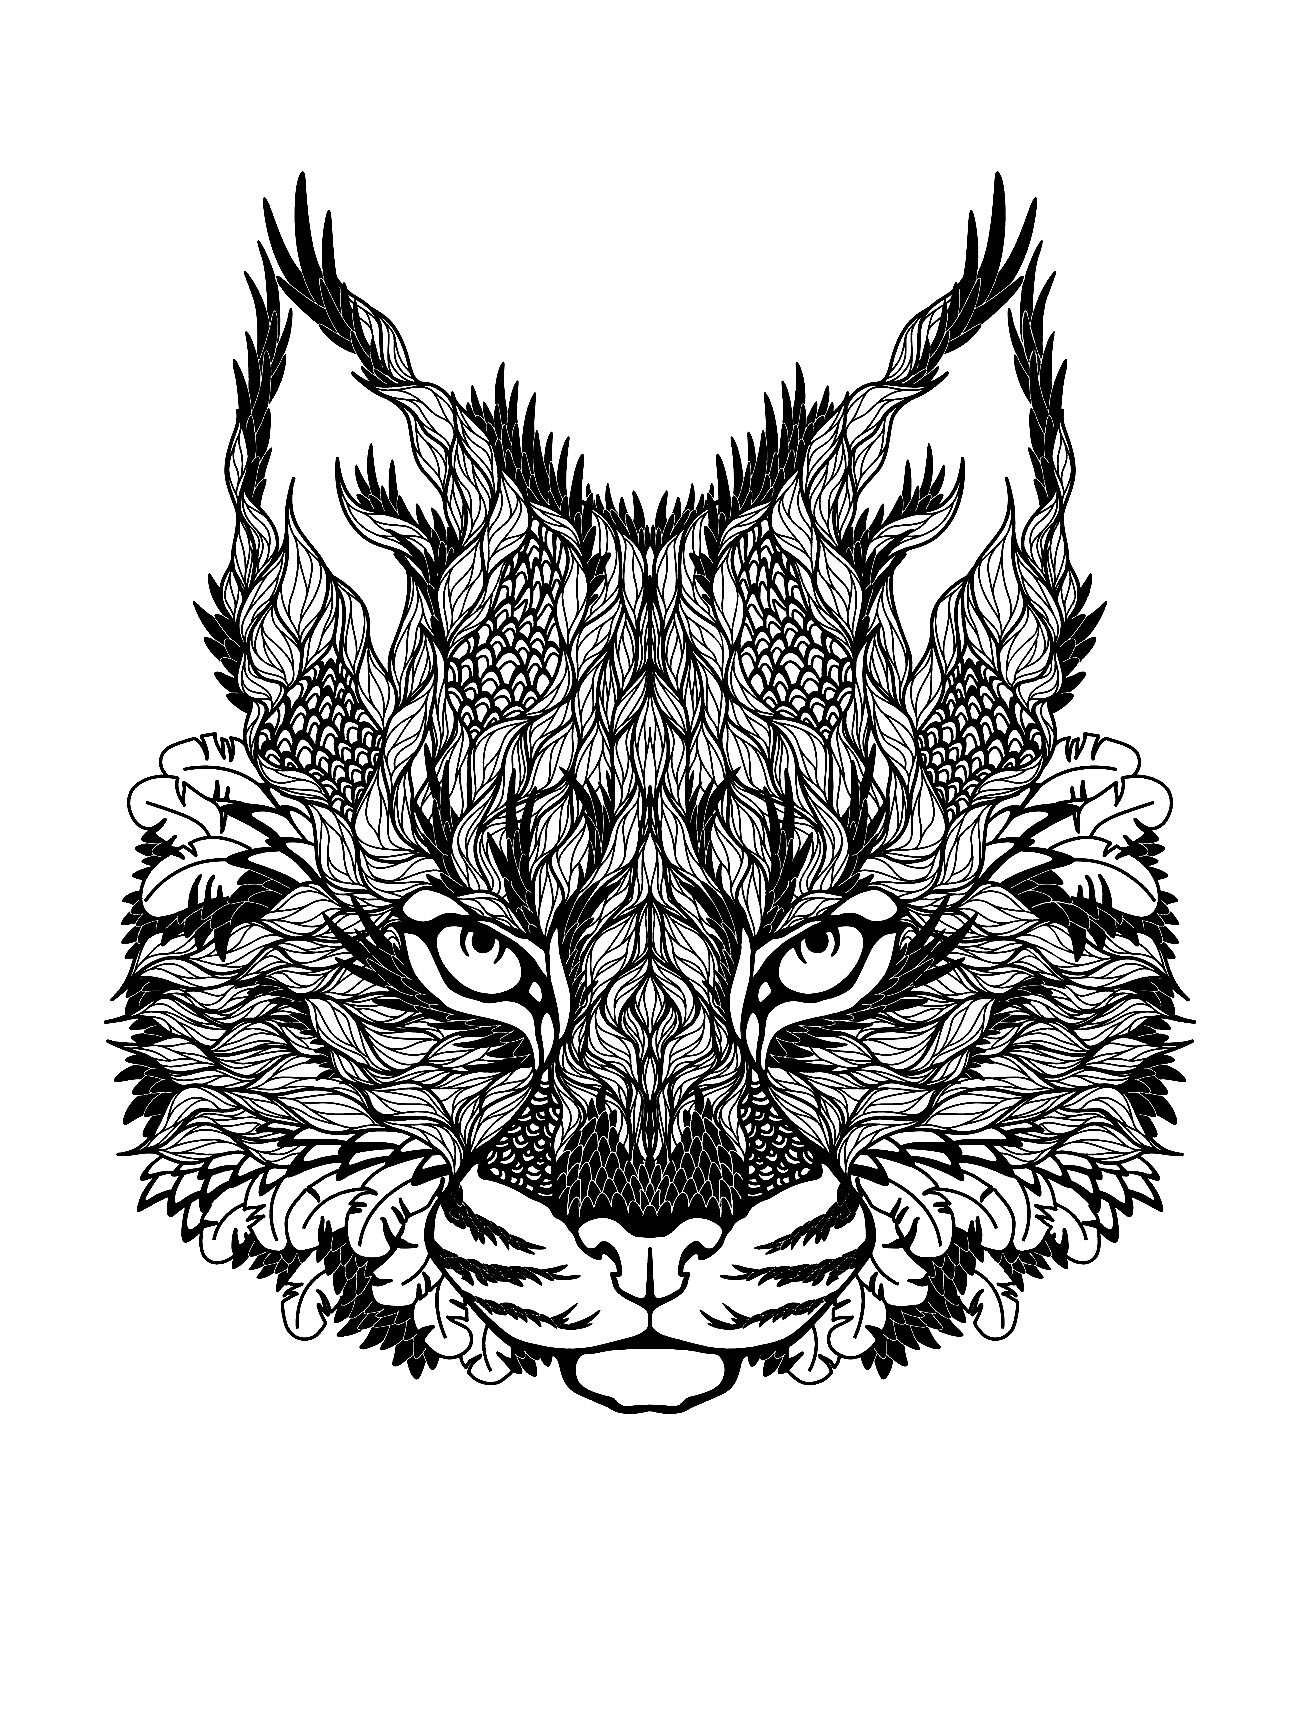 Cat to color difficult - Cats Adult Coloring Pages